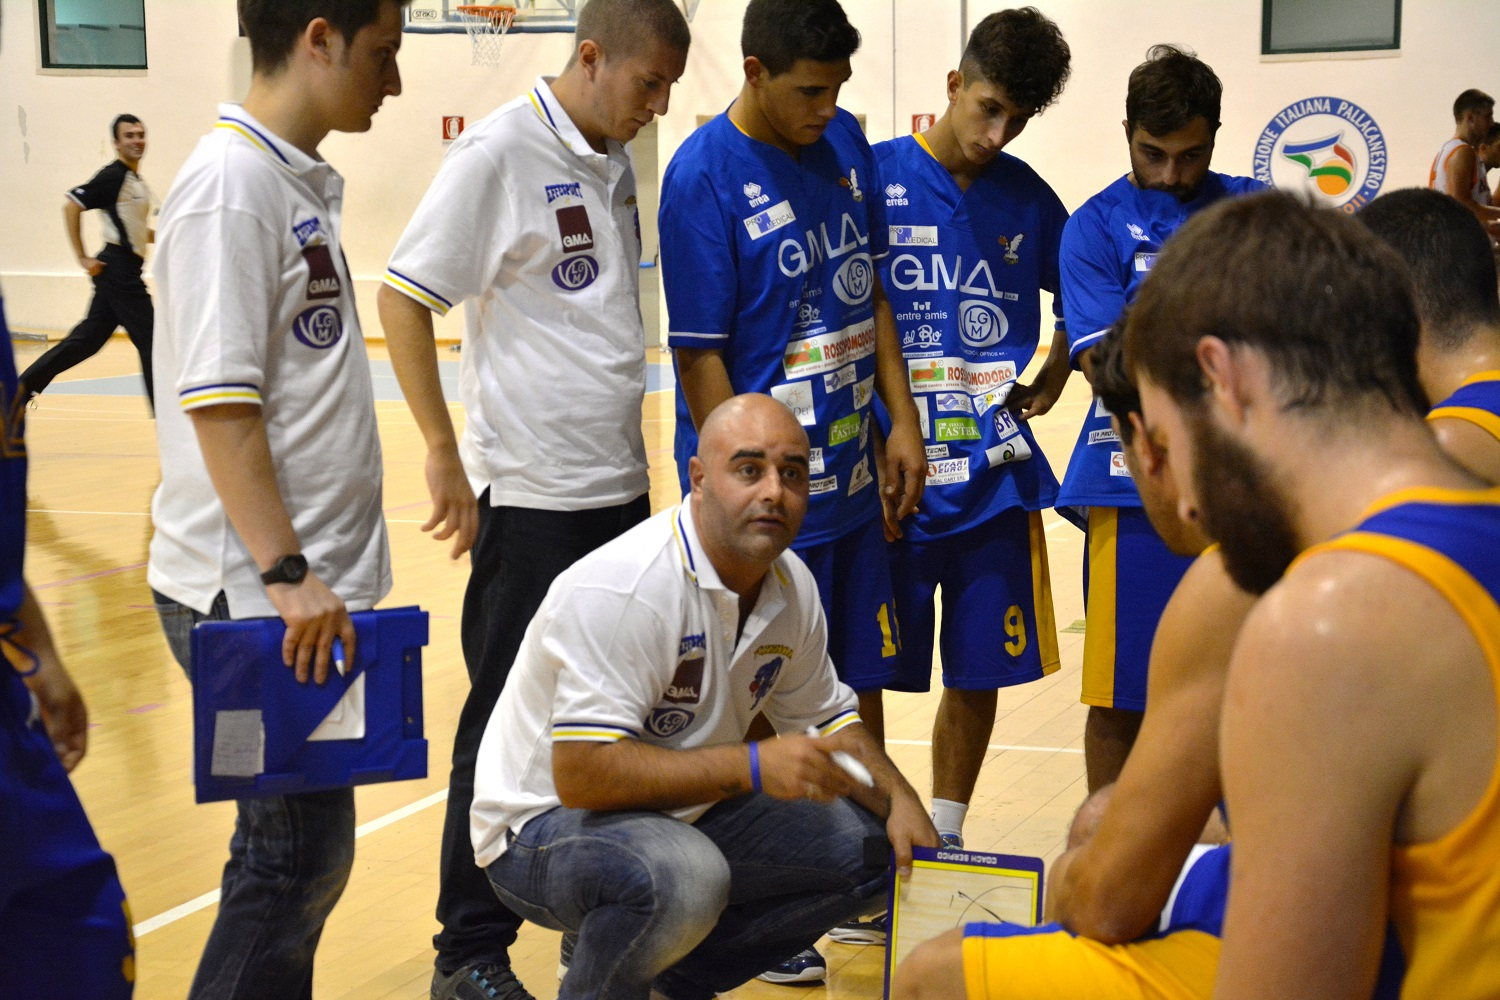 Mauro Serpico, coach della Virtus durante un time out